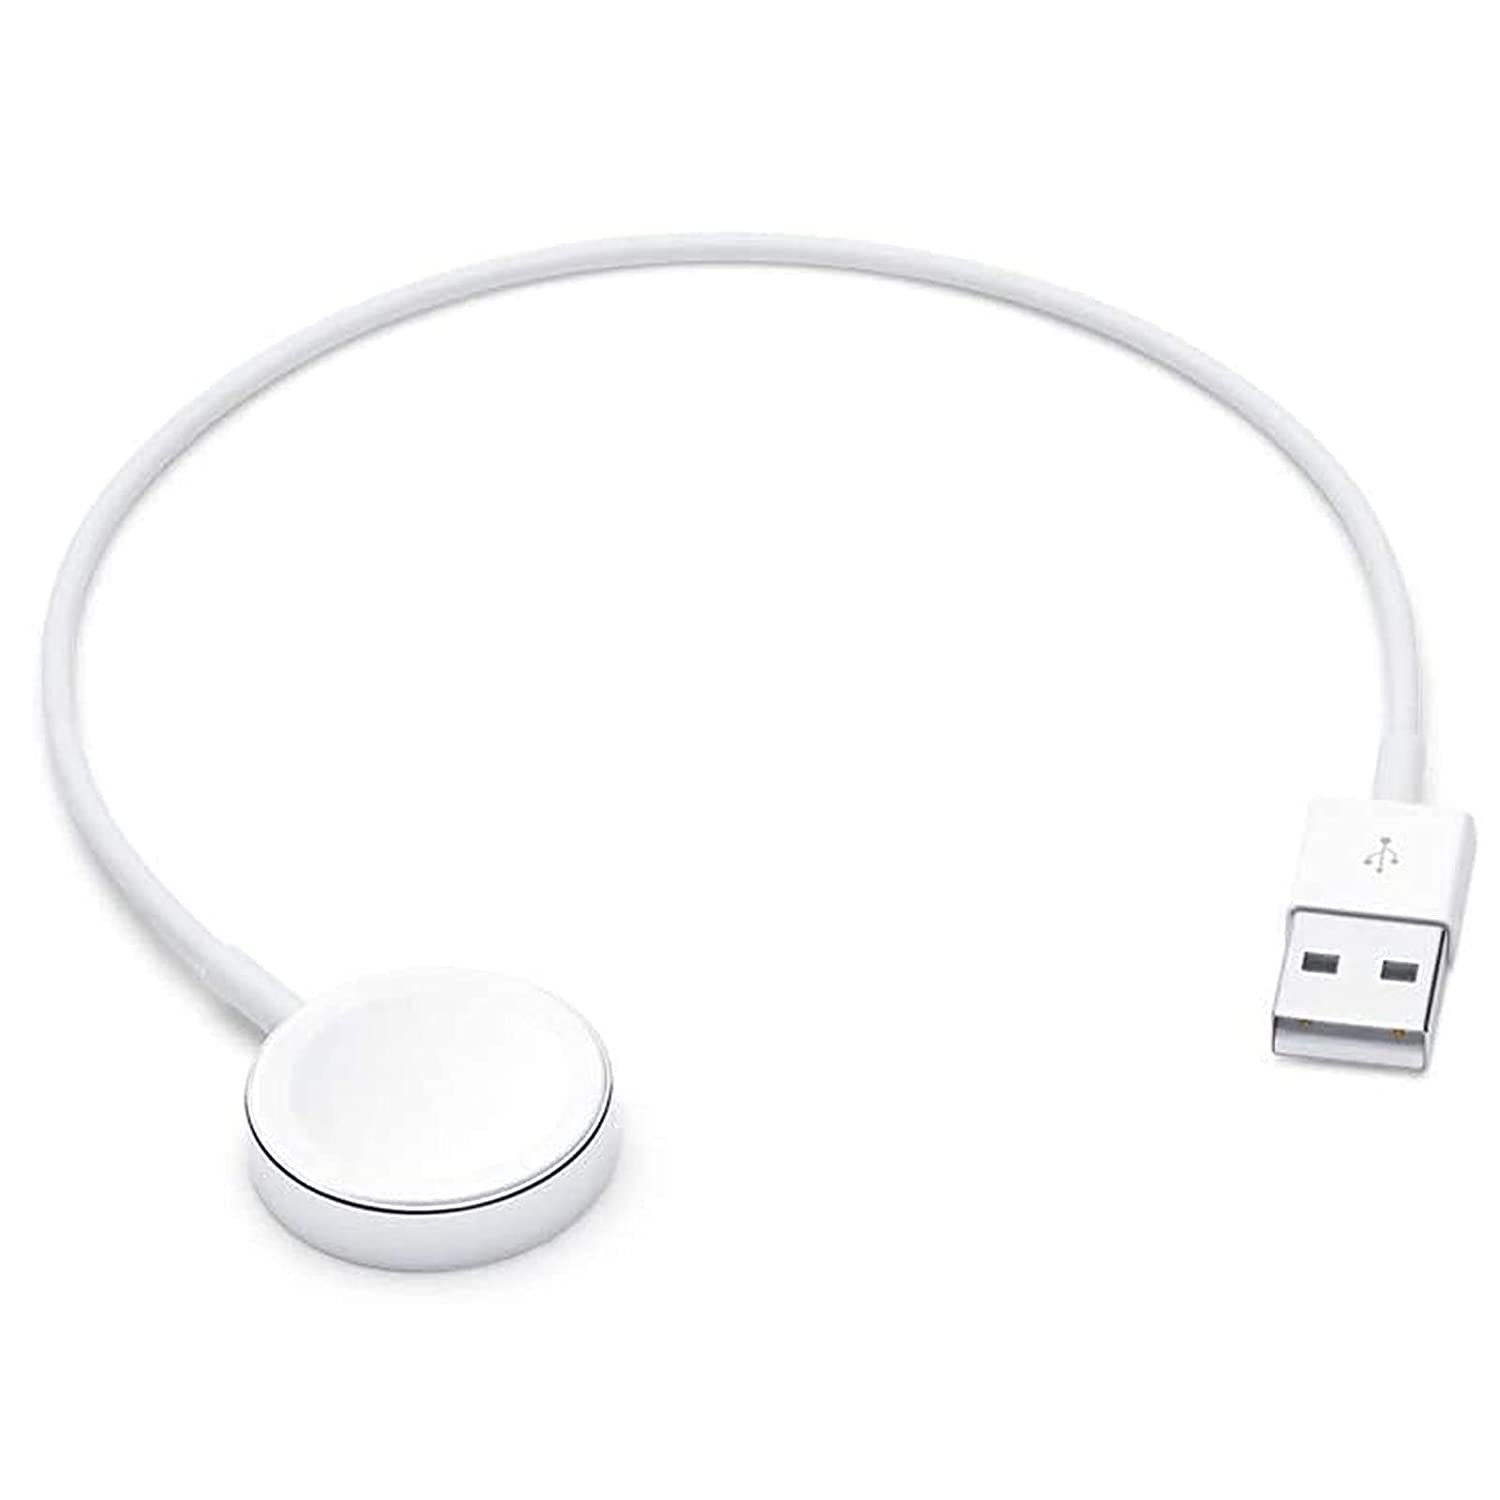 Watch Charger for Apple Watch Charger Charging Cable, Apple Watch Magnetic Charging Cable Compatible with Apple Watch SE/6/5/4/3/2/1 (0.3 m/1 ft)